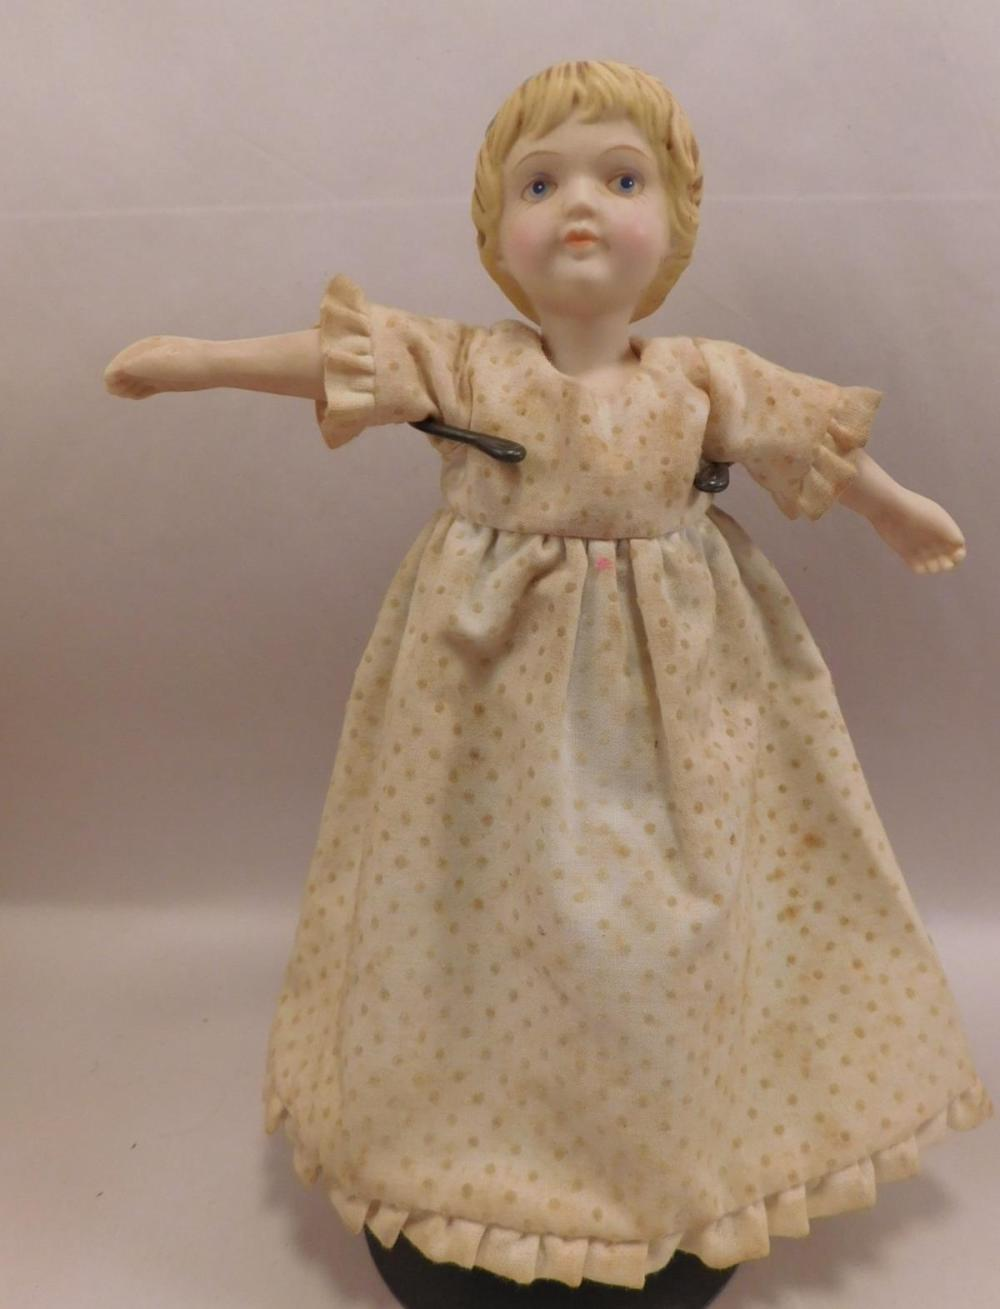 DOLL BISQUE GERMAN GERMANY VINTAGE ANTIQUE